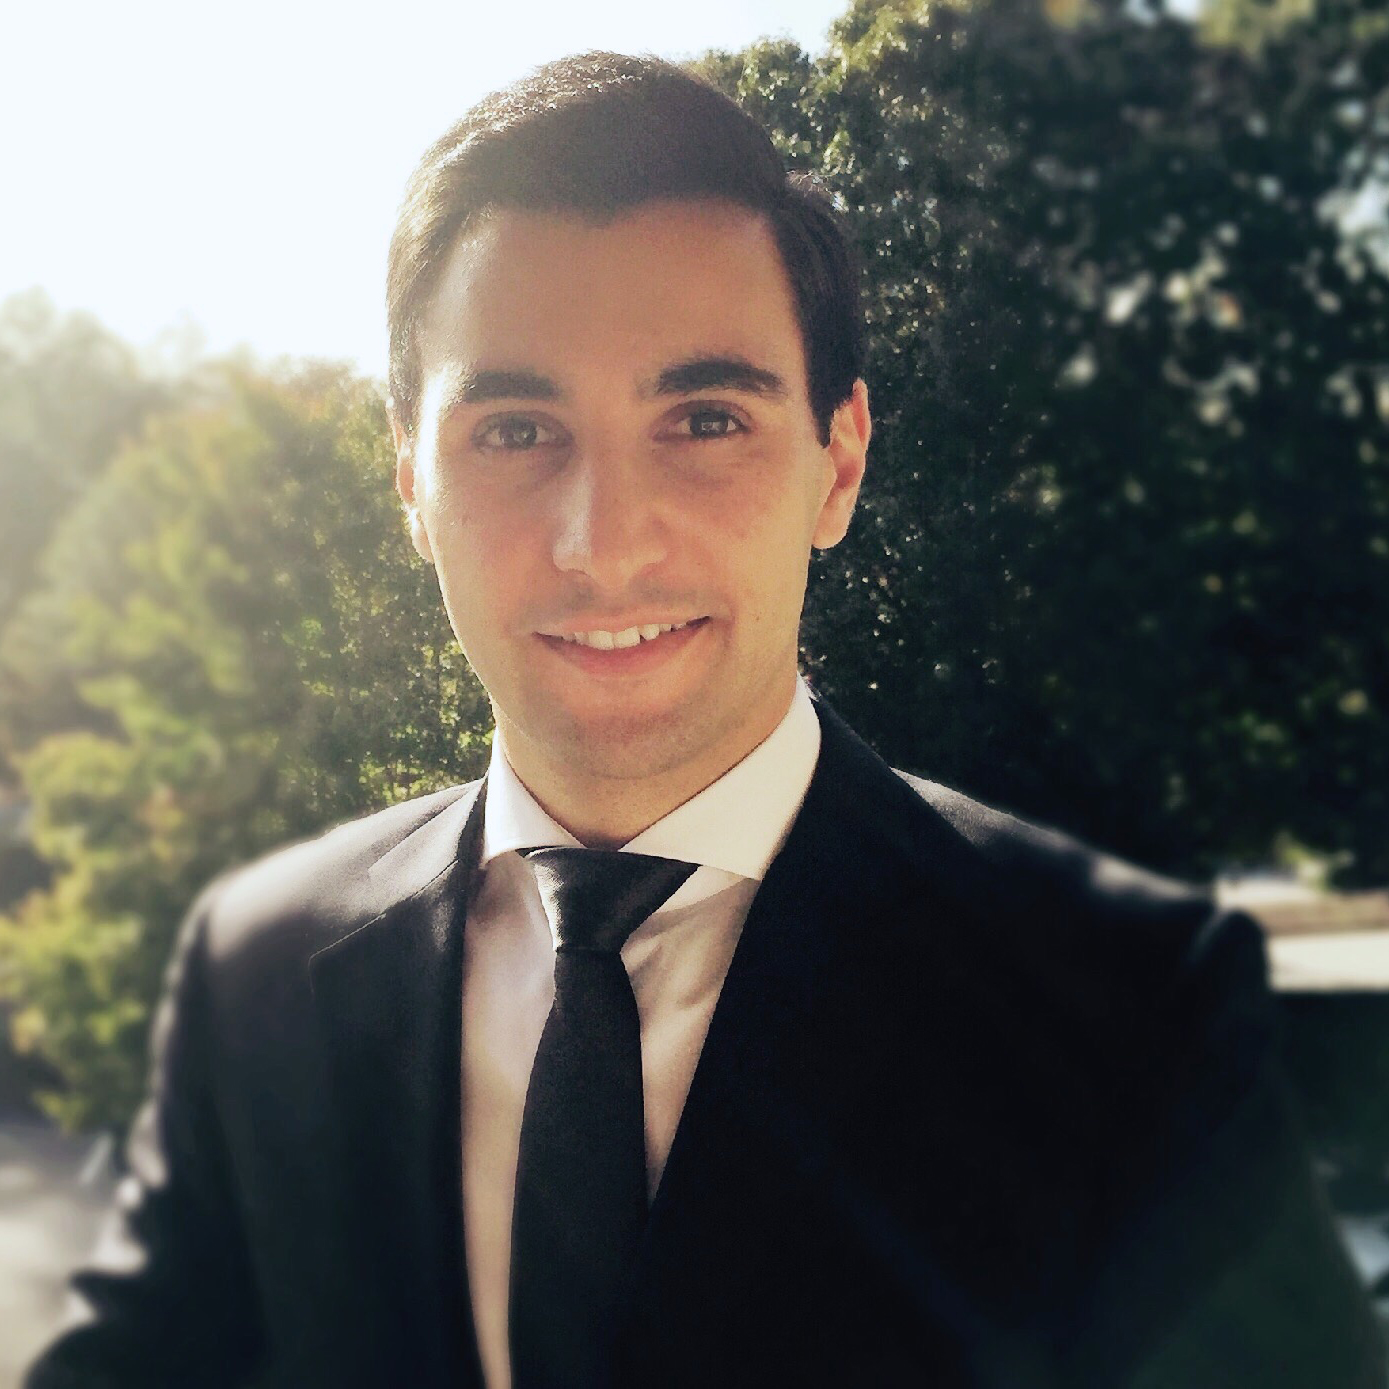 Alexander Kirakosyan - Alik has extensive experience in marketing analytics and turning operations data into actionable strategy. He will be serving as Chief of Business, where he will oversee sales strategy, partnerships, and operation.